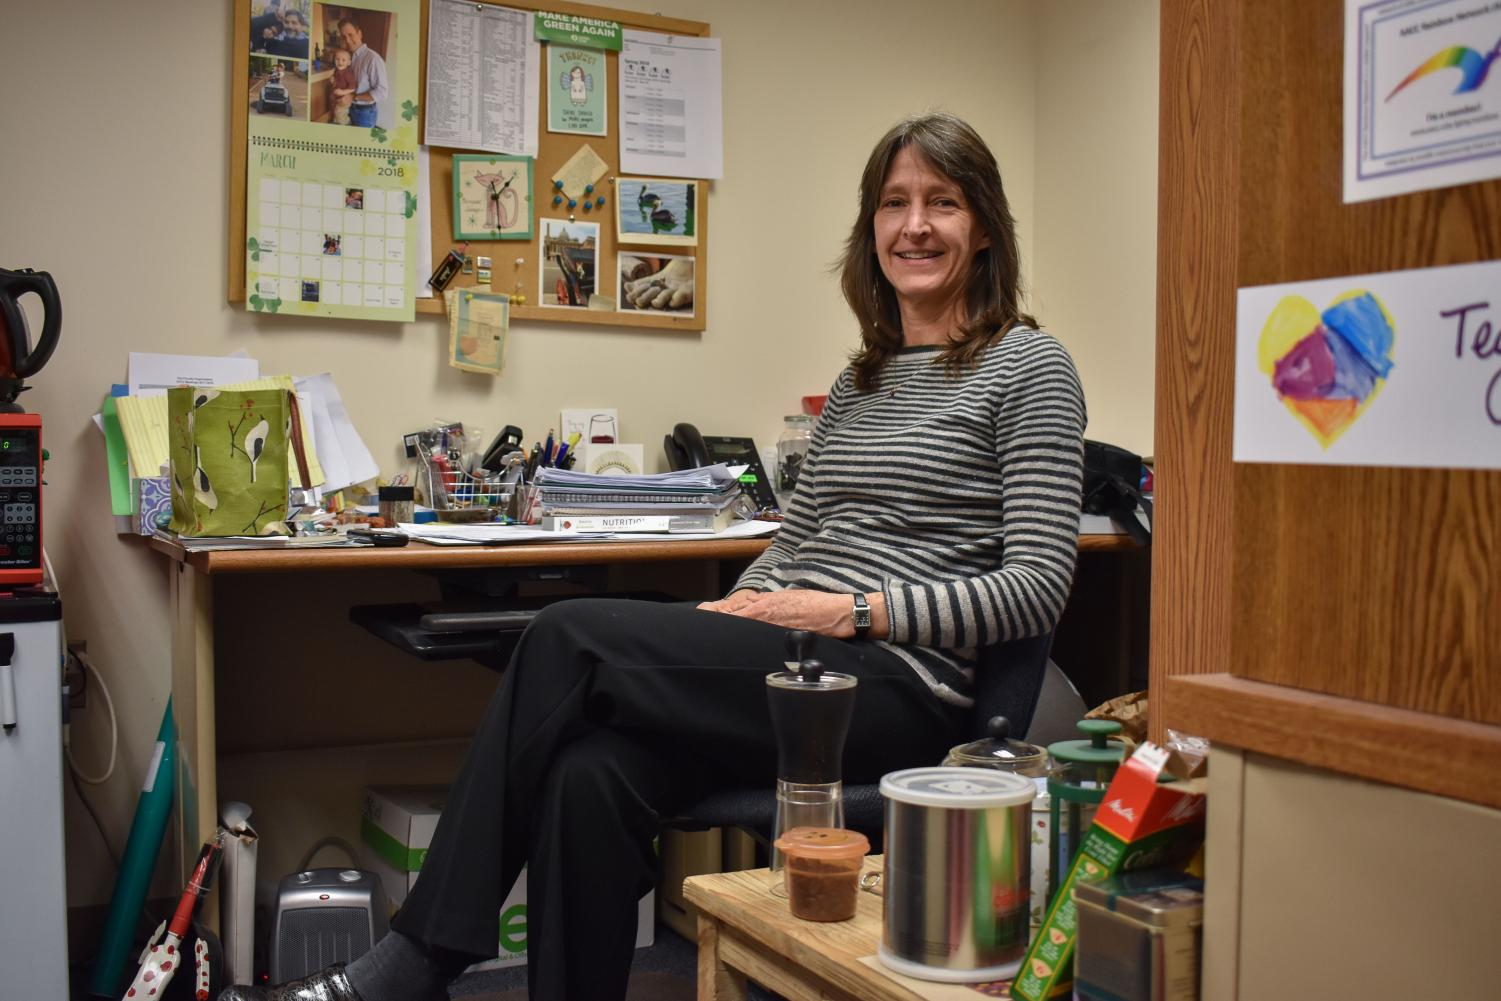 Nutrition professor Karen Israel has filled her office with items she has found a second use for, like Mason jars, plastic silverware and paper products.